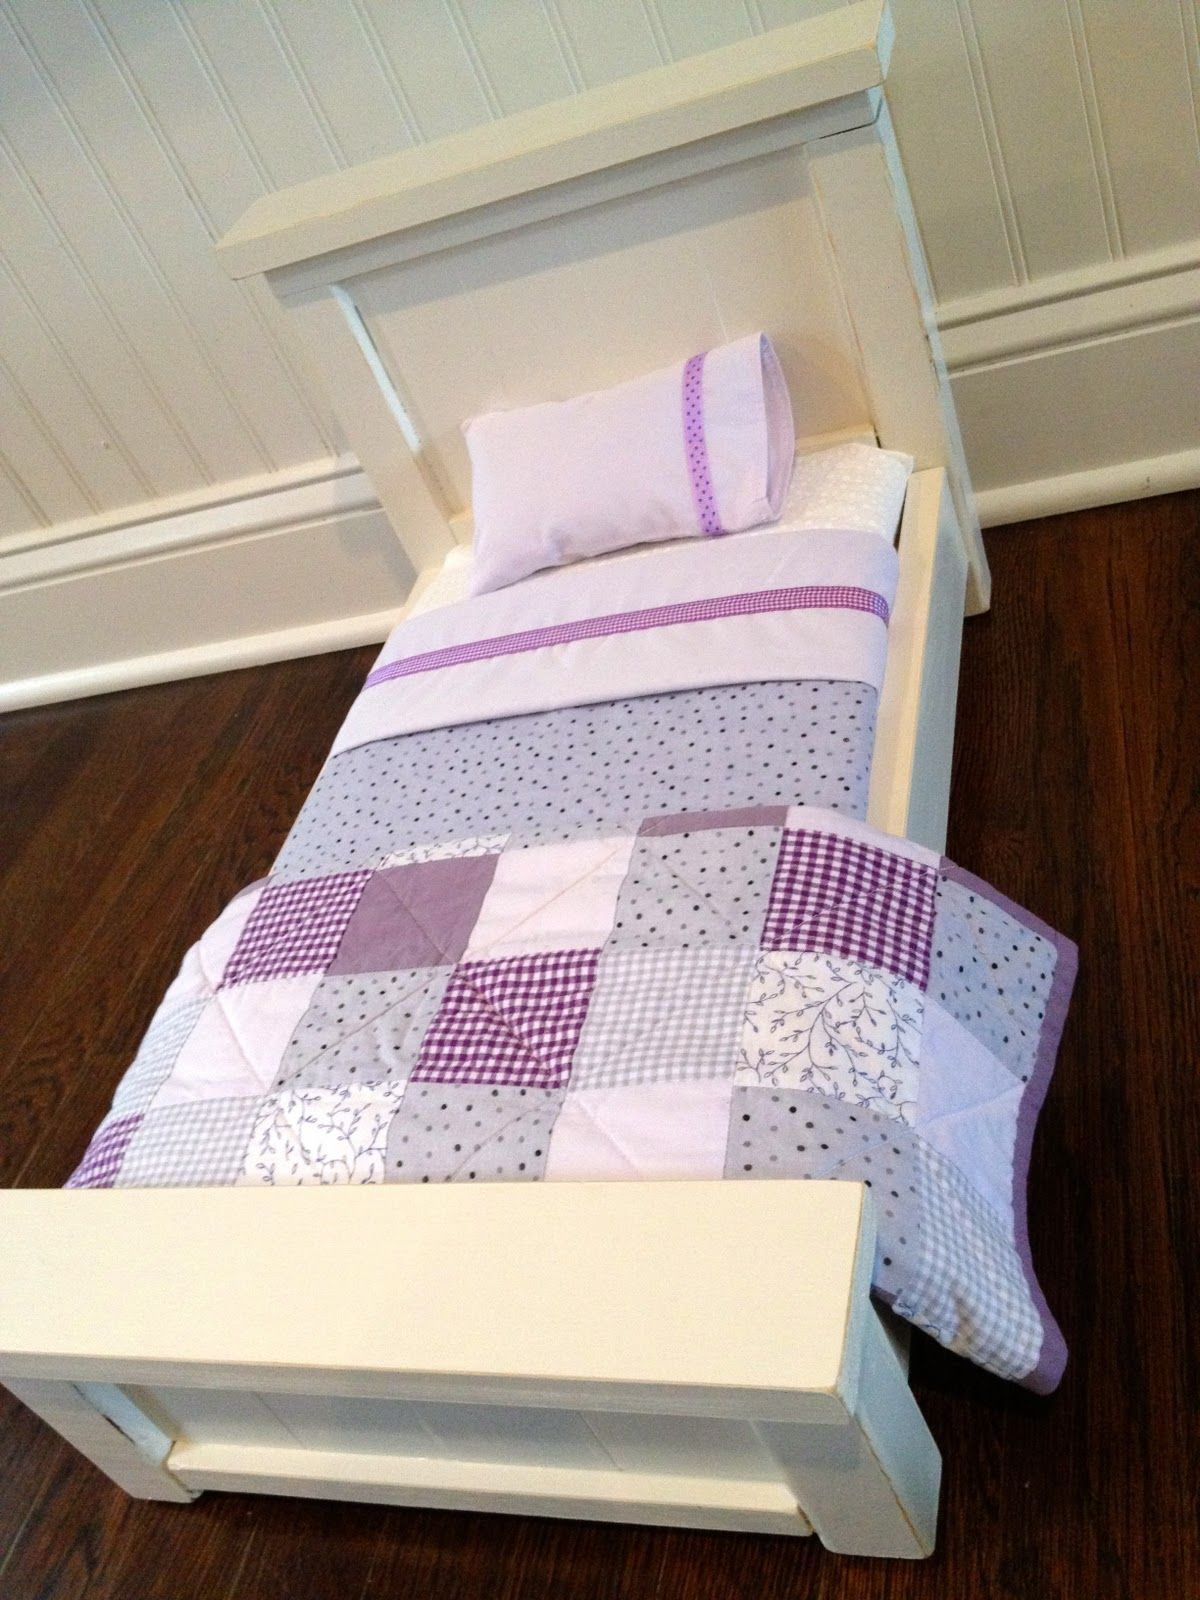 bedding staggering quilt sets image lace kidkraftoat chevron bed lavender set toddler for ideas